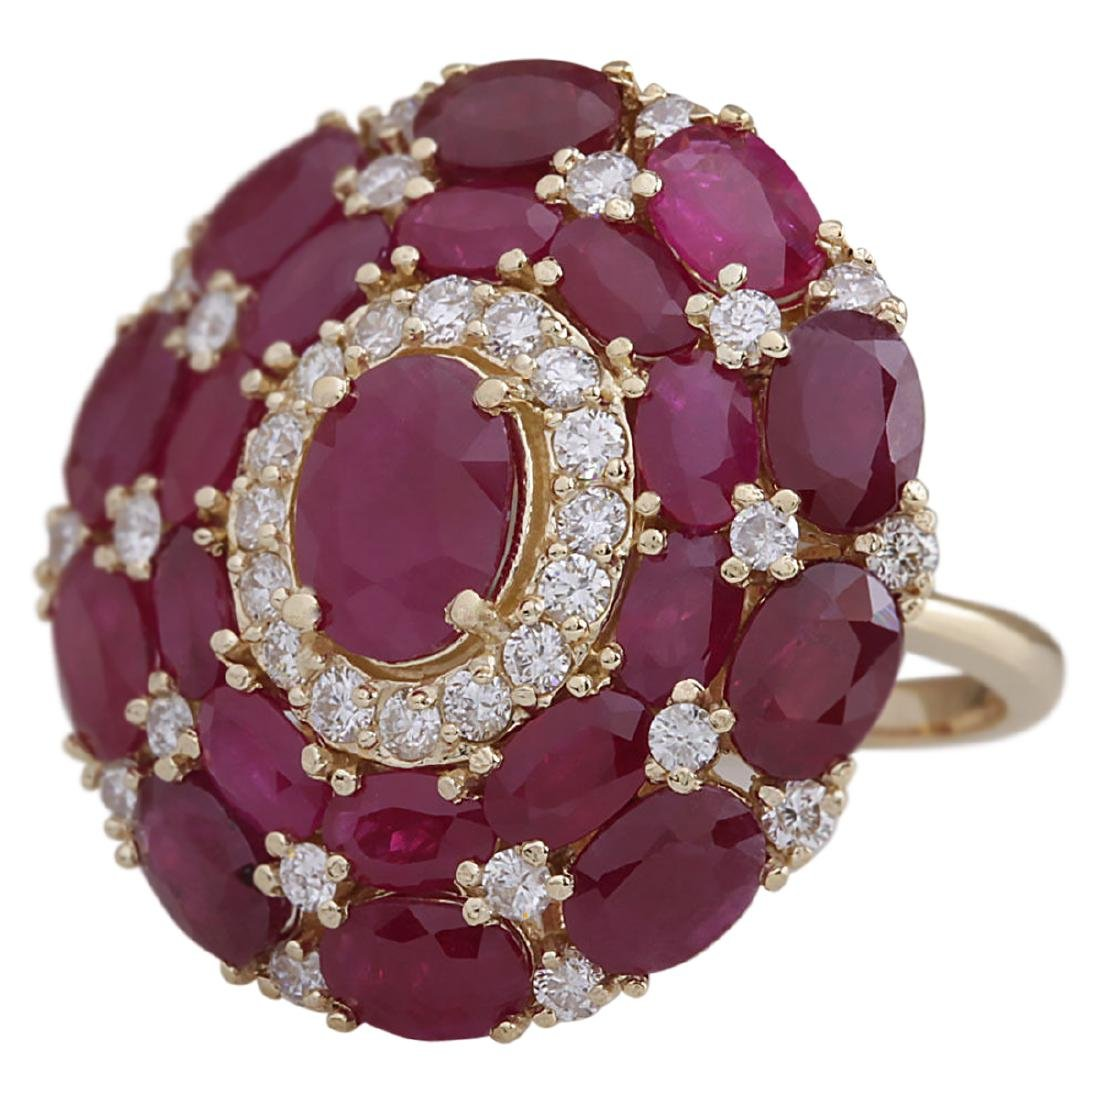 13.23 CTW Natural Red Ruby And Diamond Ring 18K Solid - 2